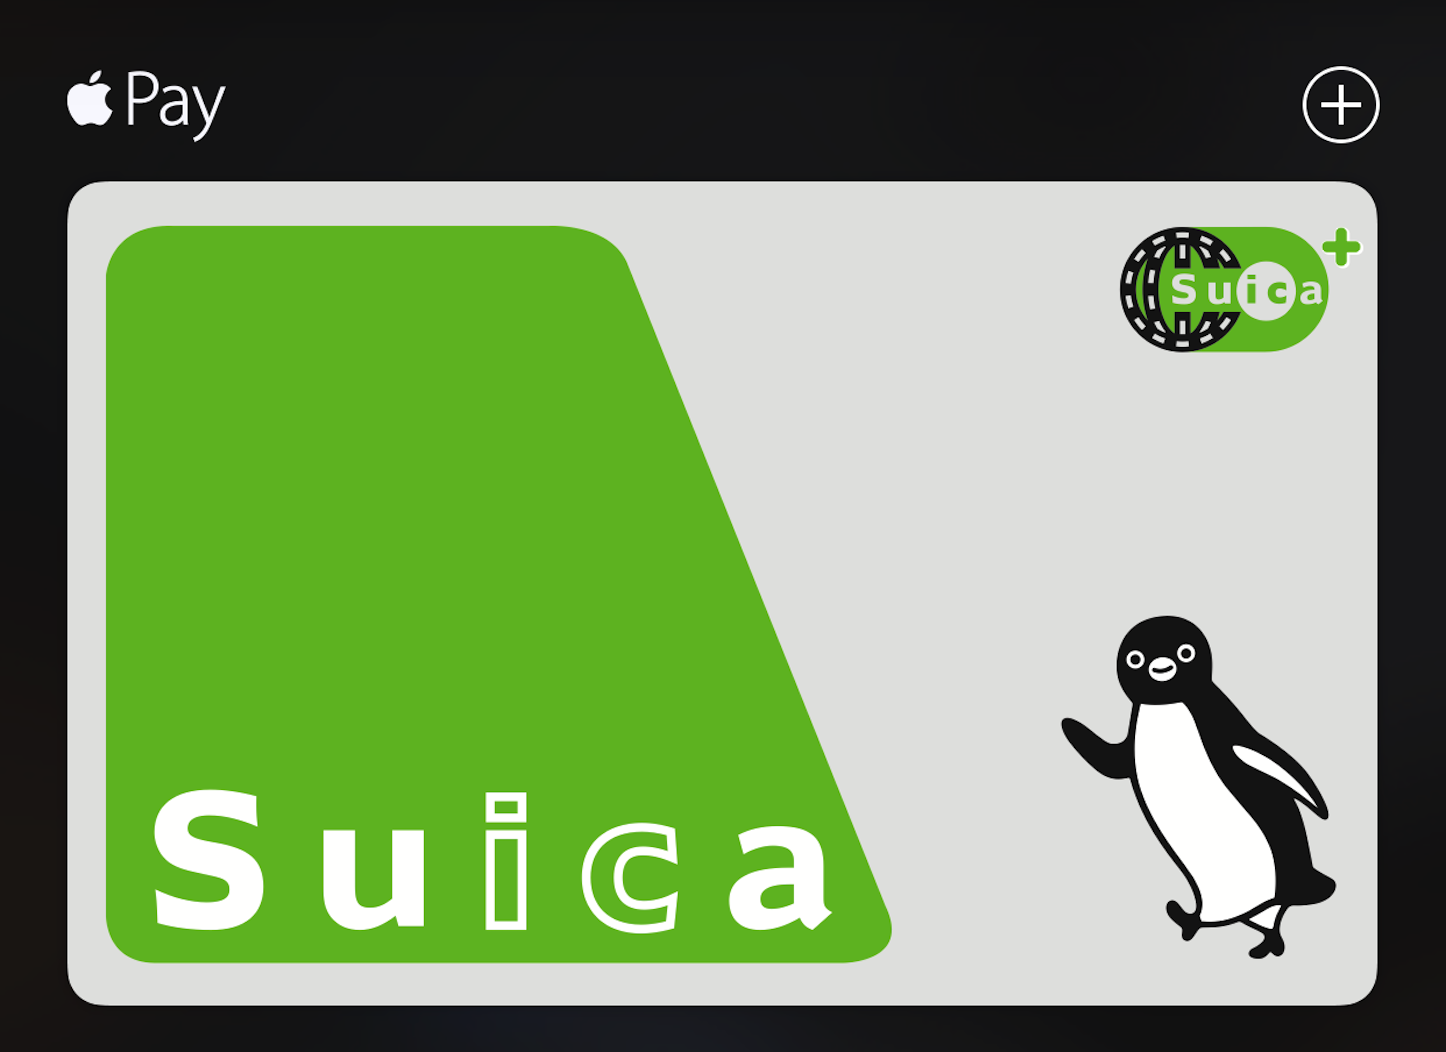 Suica Card for Apple Pay